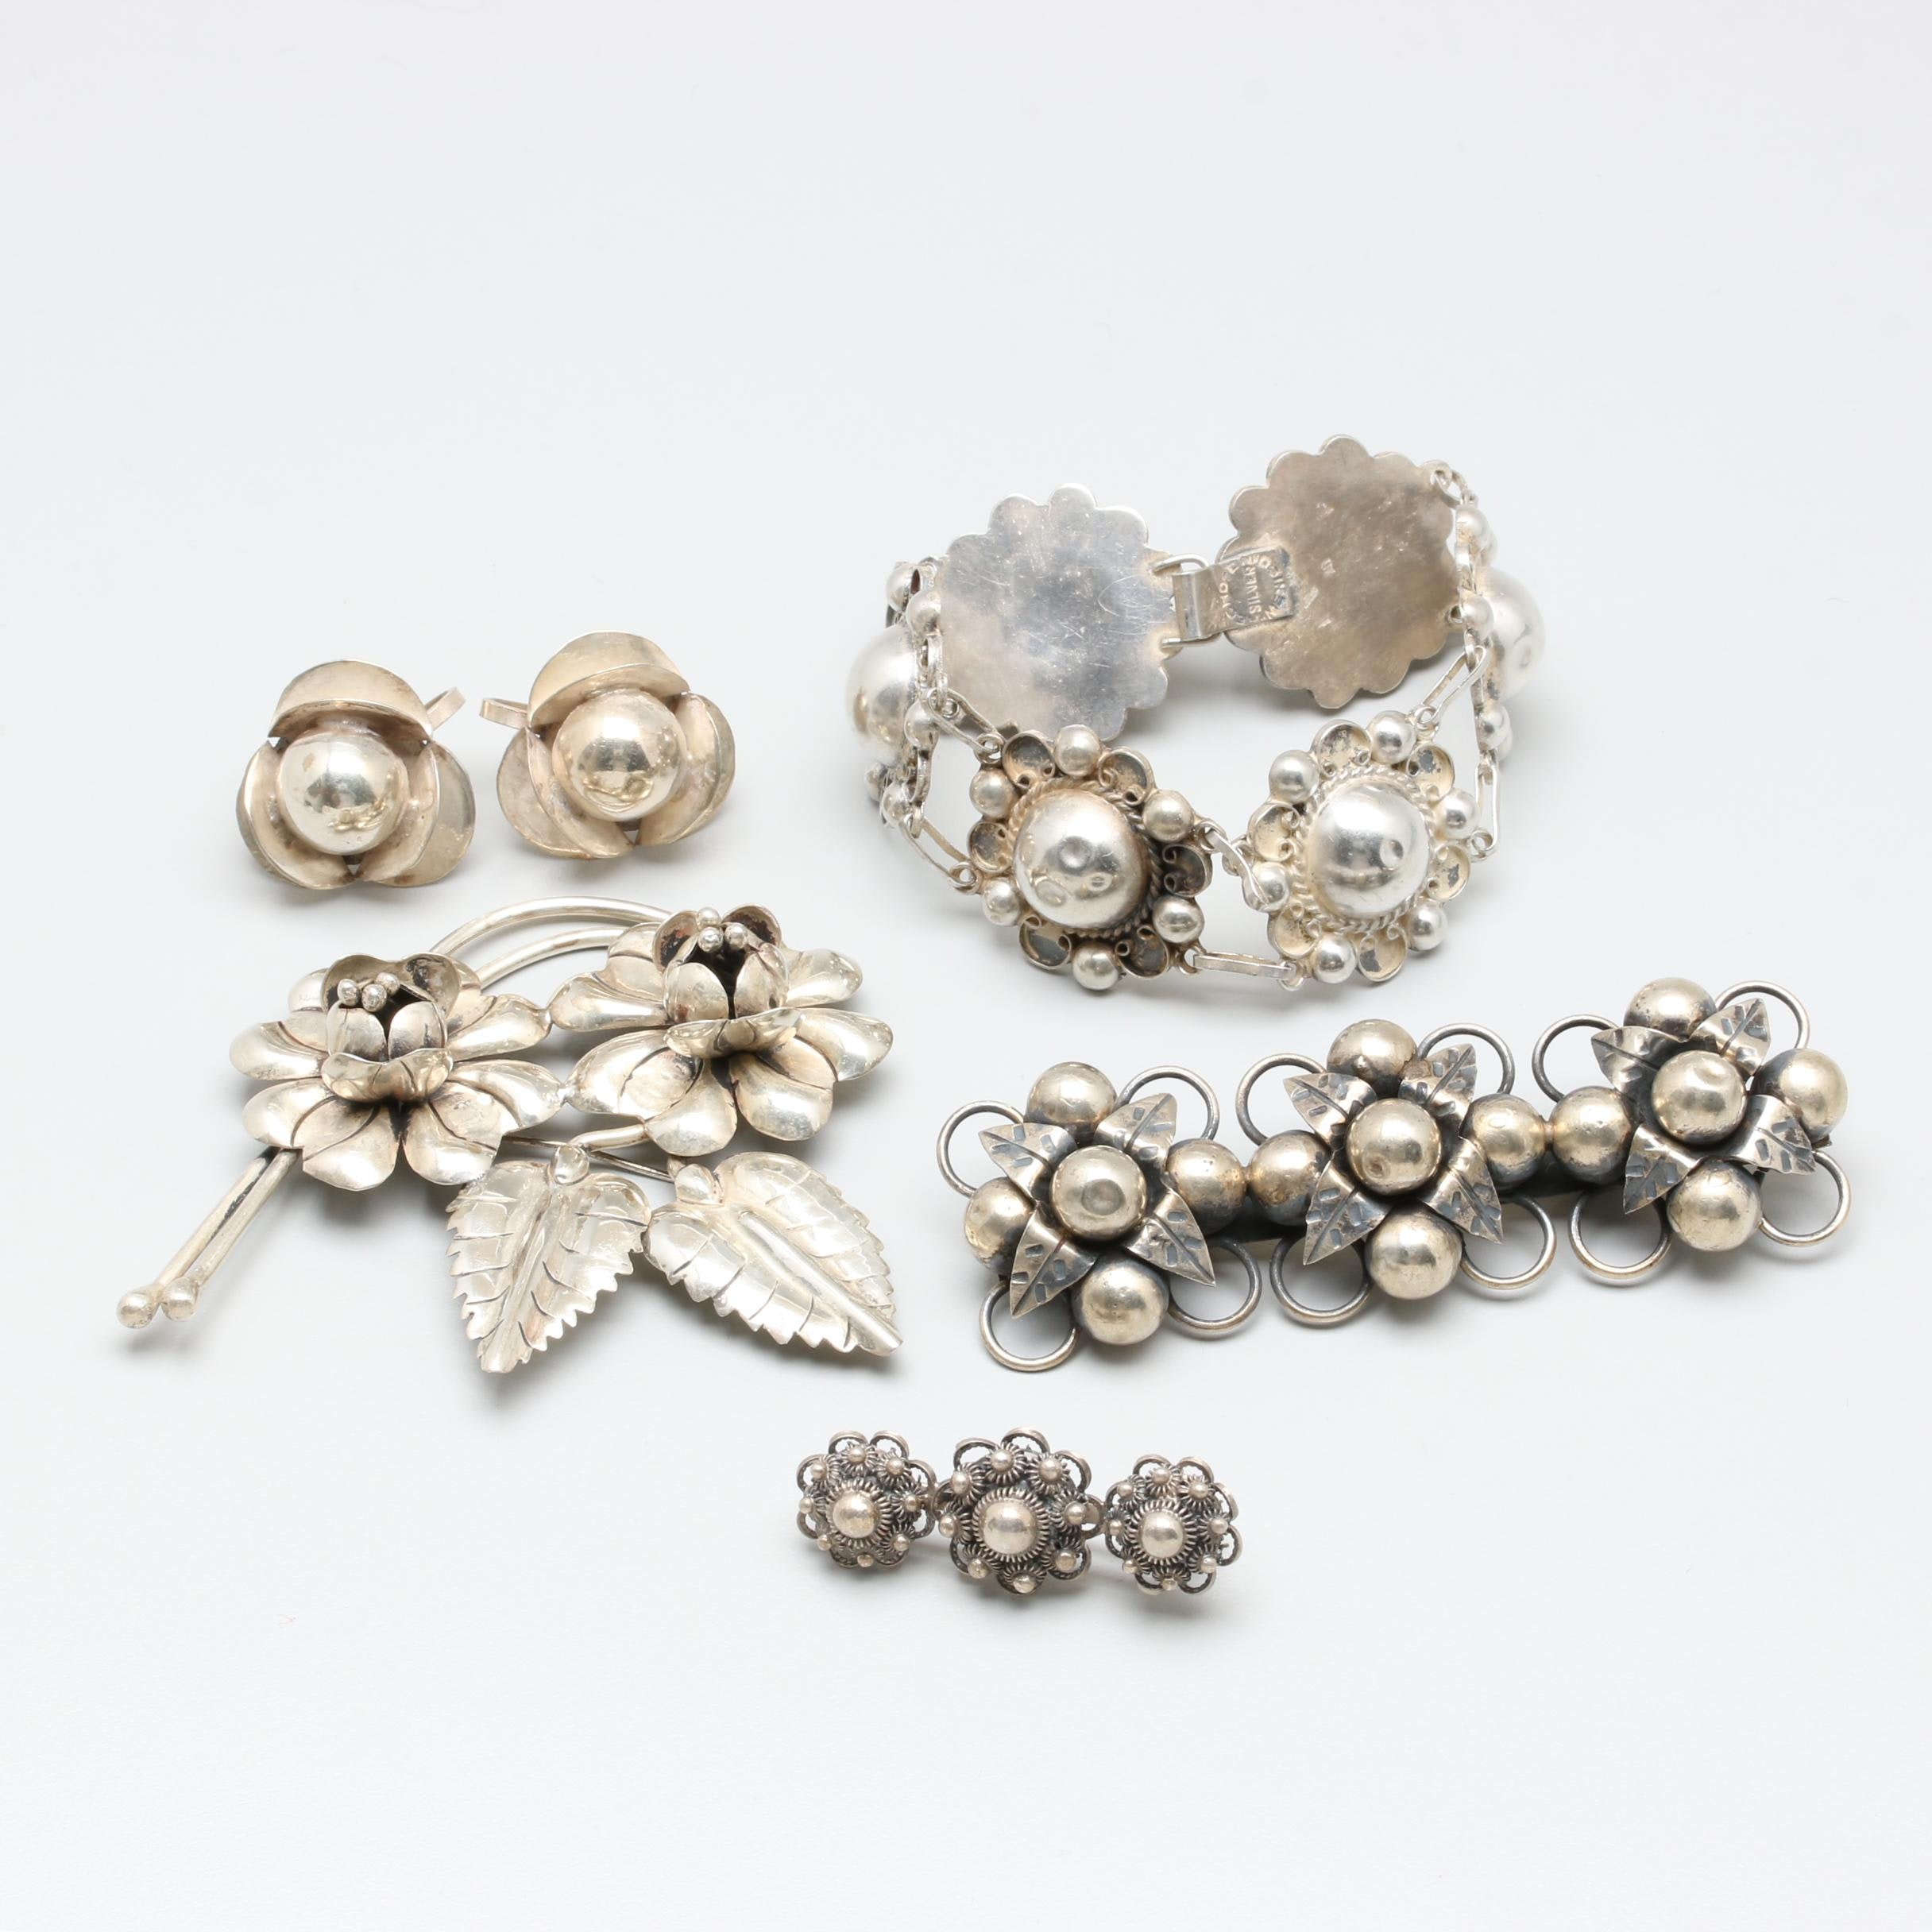 Sterling Silver Jewelry Assortment Featuring Floral Motifs